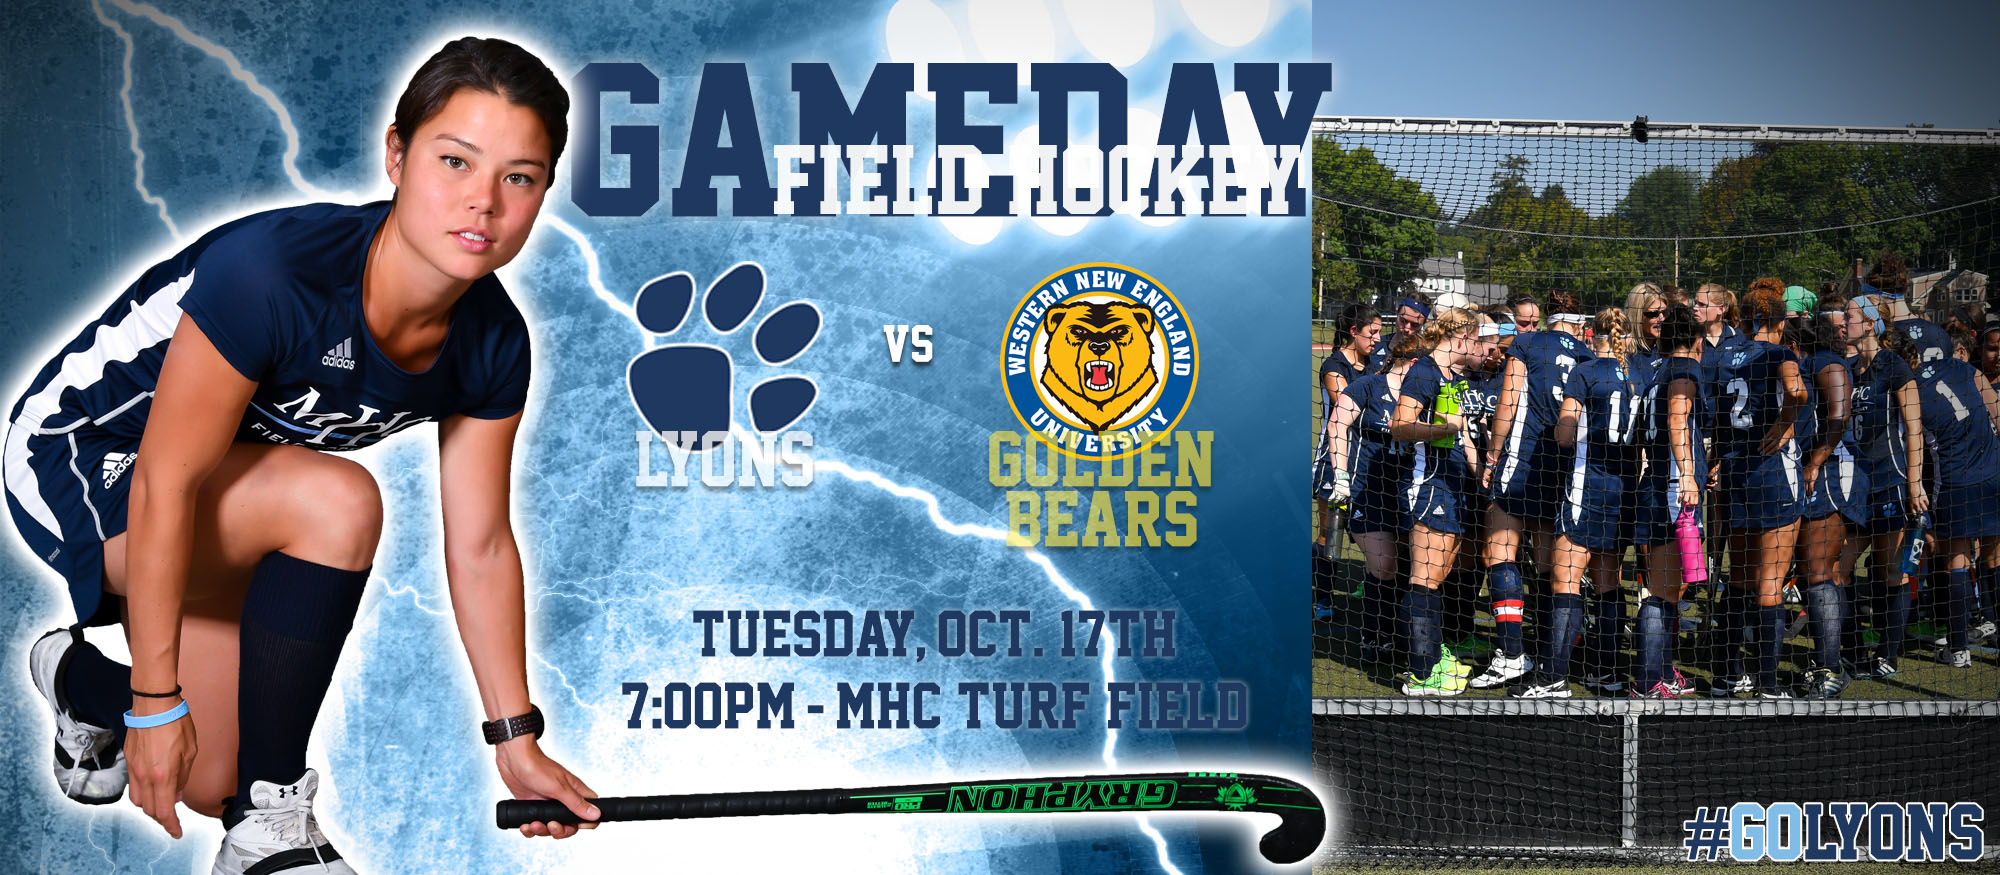 Gameday graphic promoting Tuesday, October 17th's field hockey home match against Western New England. Featured is Lyons field hockey player Liz Delorme.